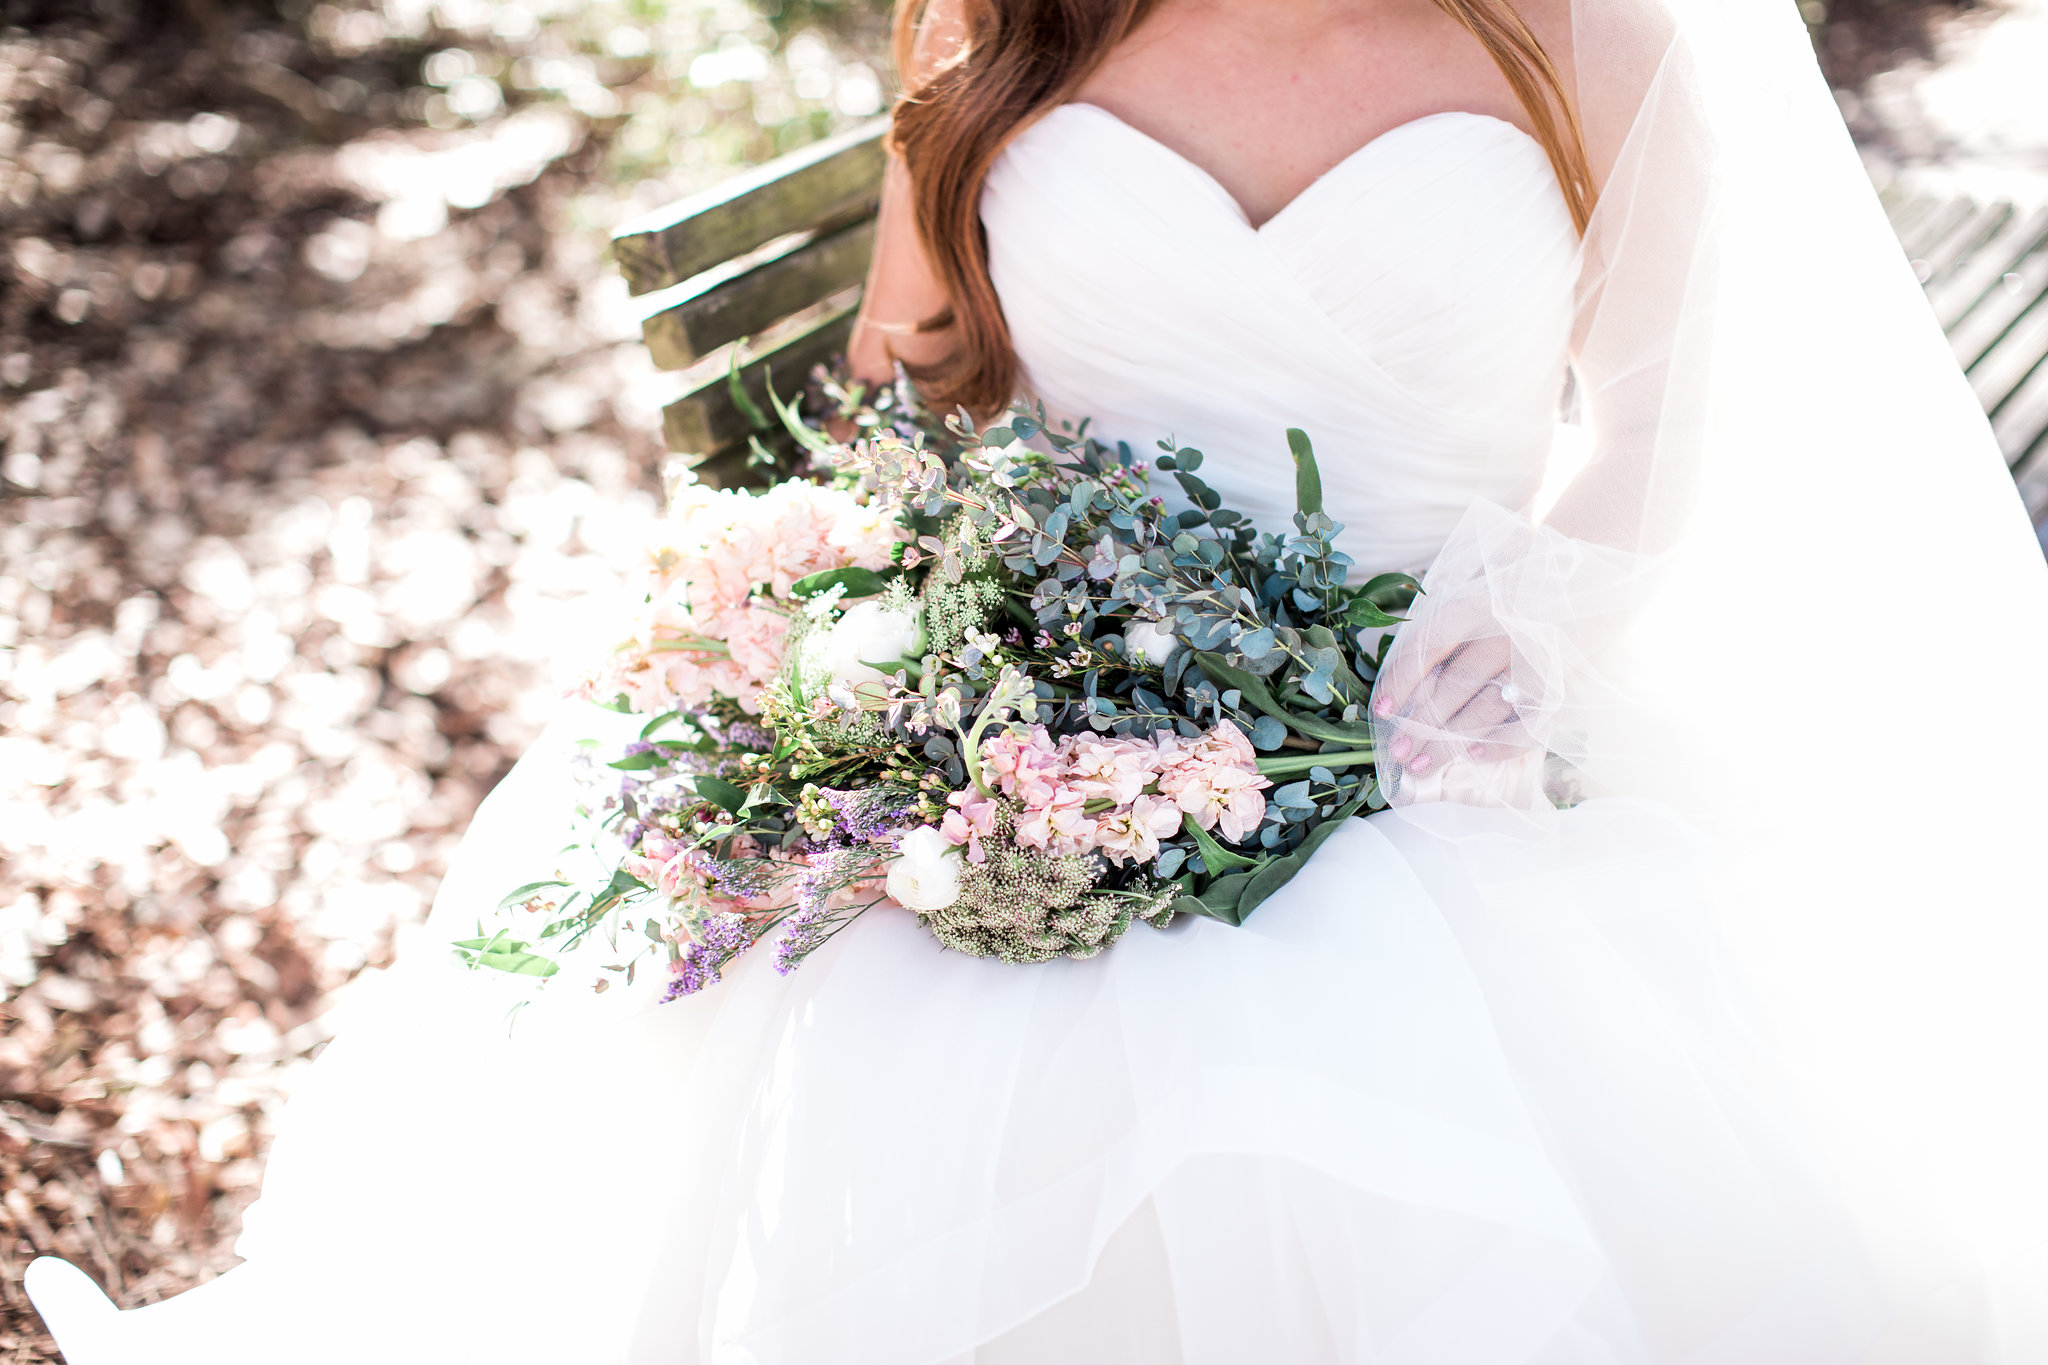 apt-b-photography-mary-elizabeths-bridal-boutique-adele-amelia-accessories-morilee-5504-savannah-bridal-boutique-savannah-weddings-savannah-wedding-photographer-savannah-bridal-gowns-savannah-wedding-dresses-historic-savannah-wedding-16.jpg